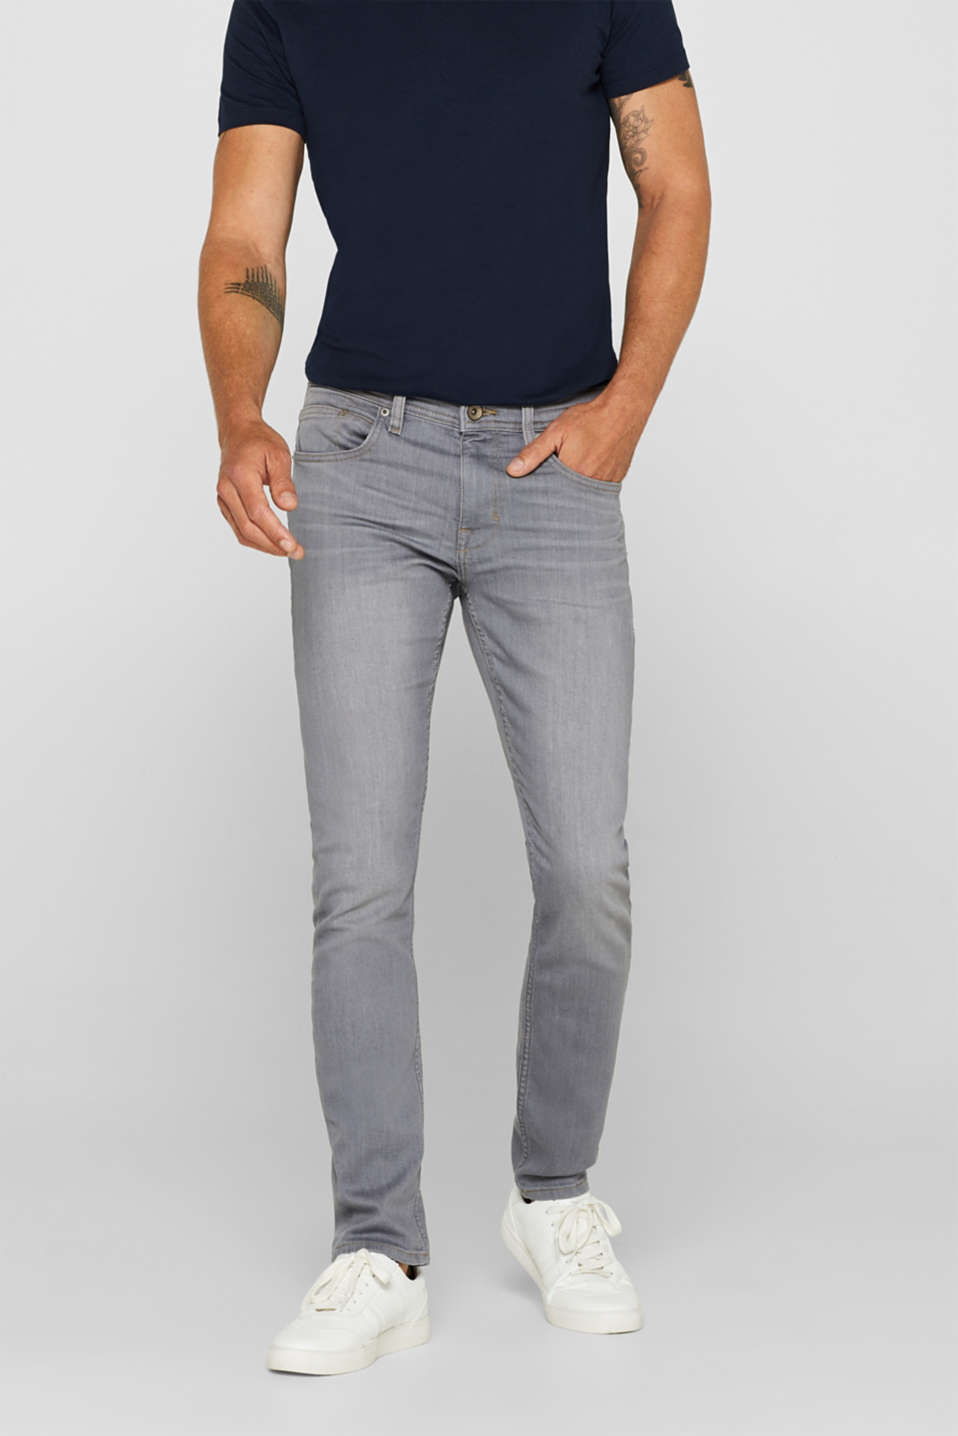 Esprit - Jeans met superstretch en COOLMAX®